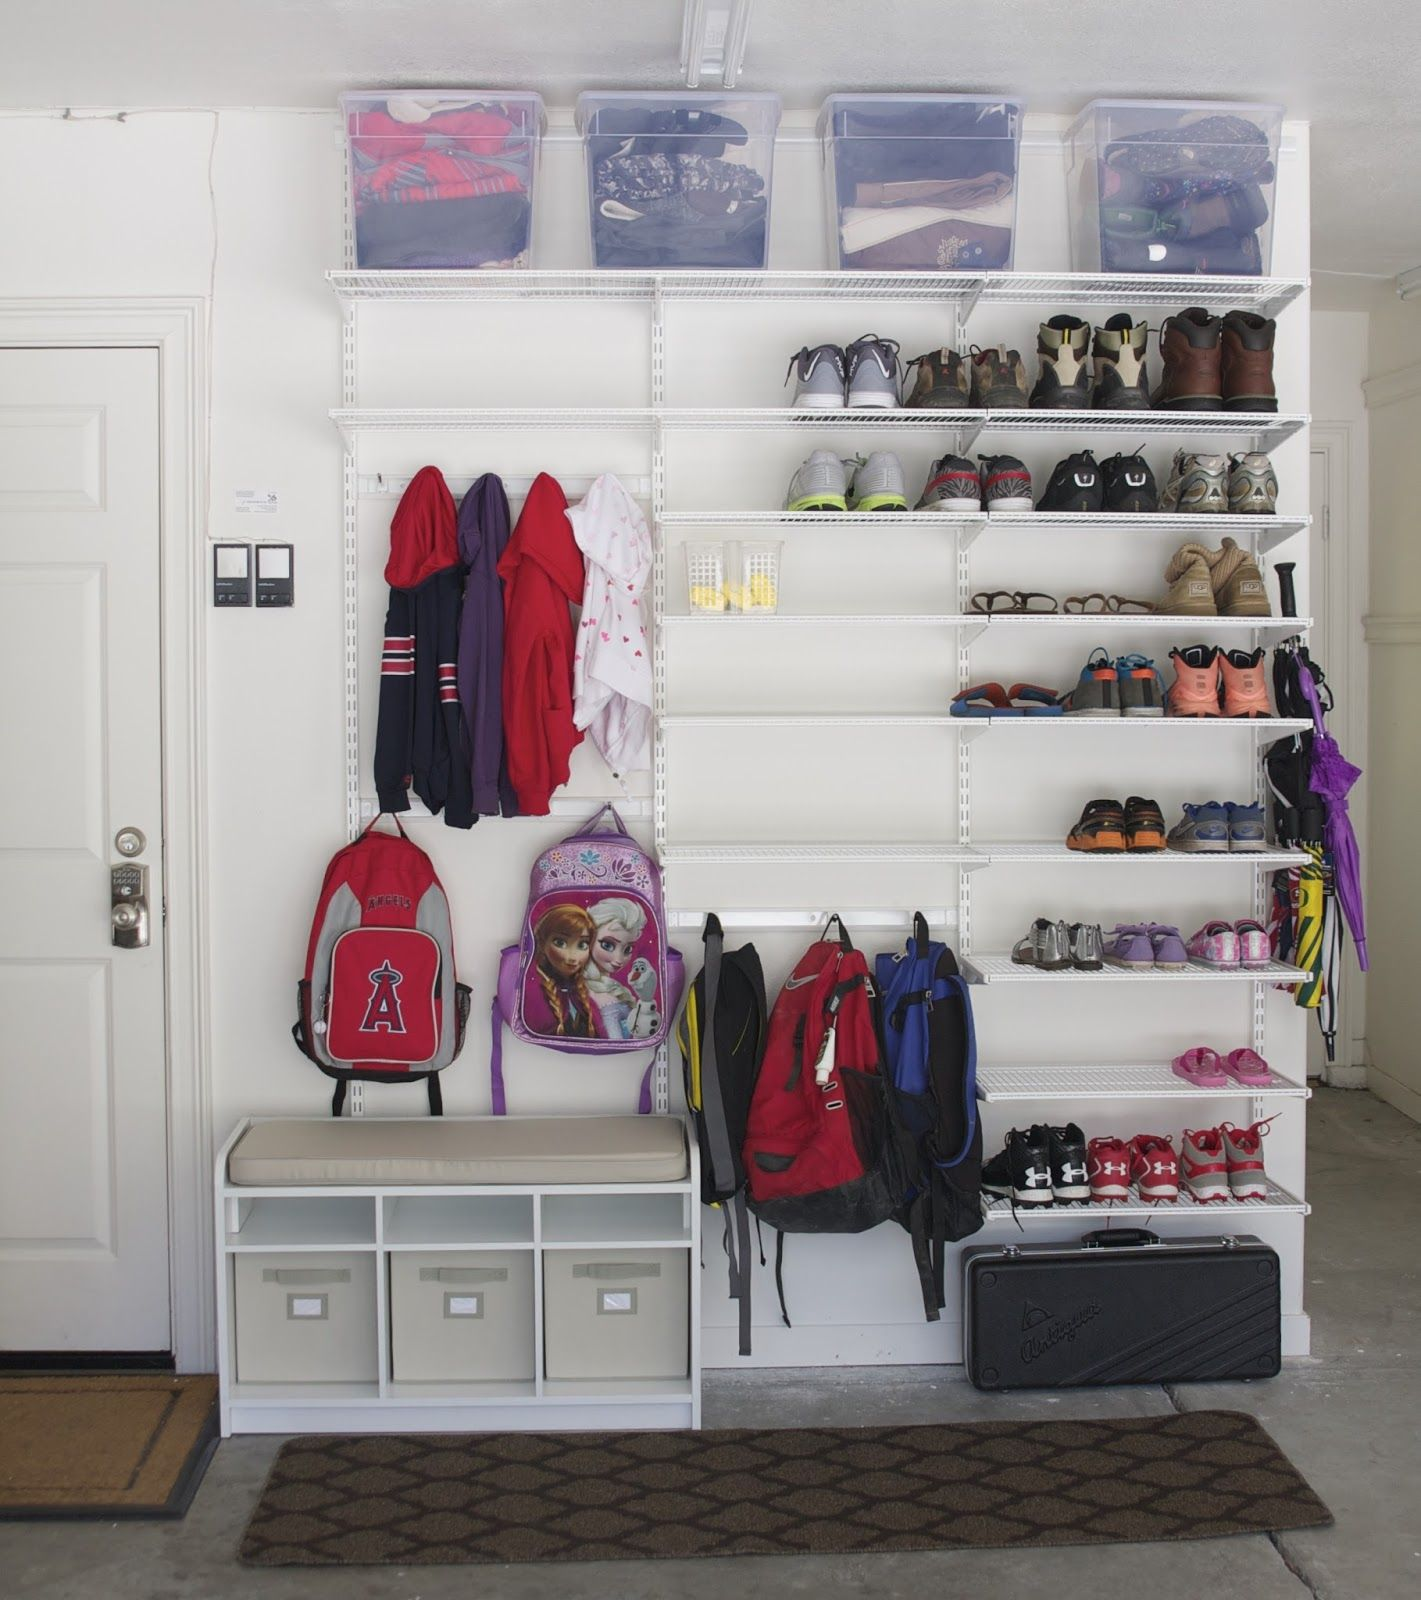 Dining Room Storage Ideas To Keep Your Scheme Clutter Free: Awesome Garage Organization System Tips & Tricks